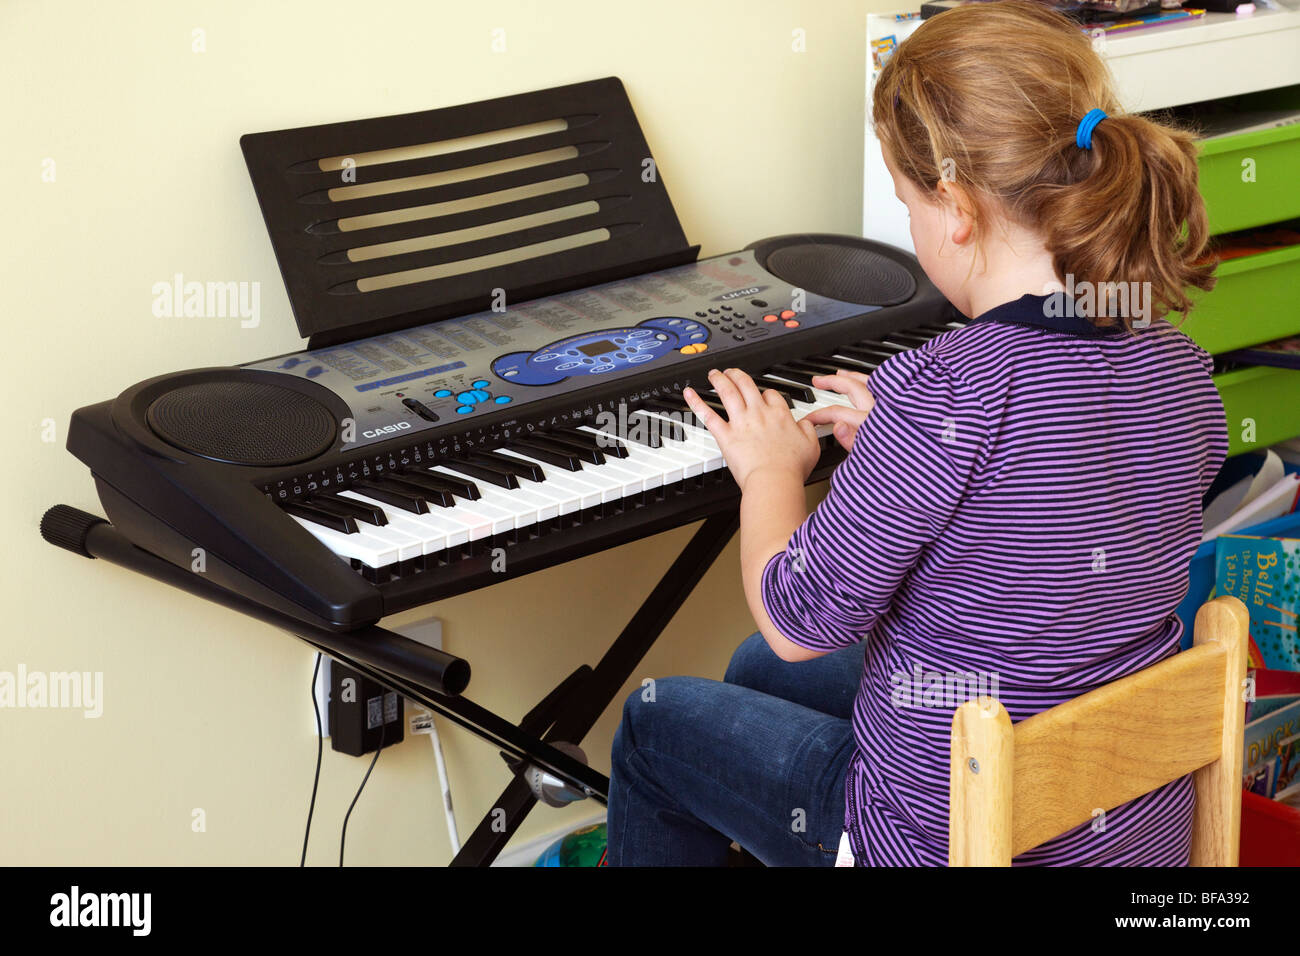 young girl playing Casio synthesizer keyboard - Stock Image